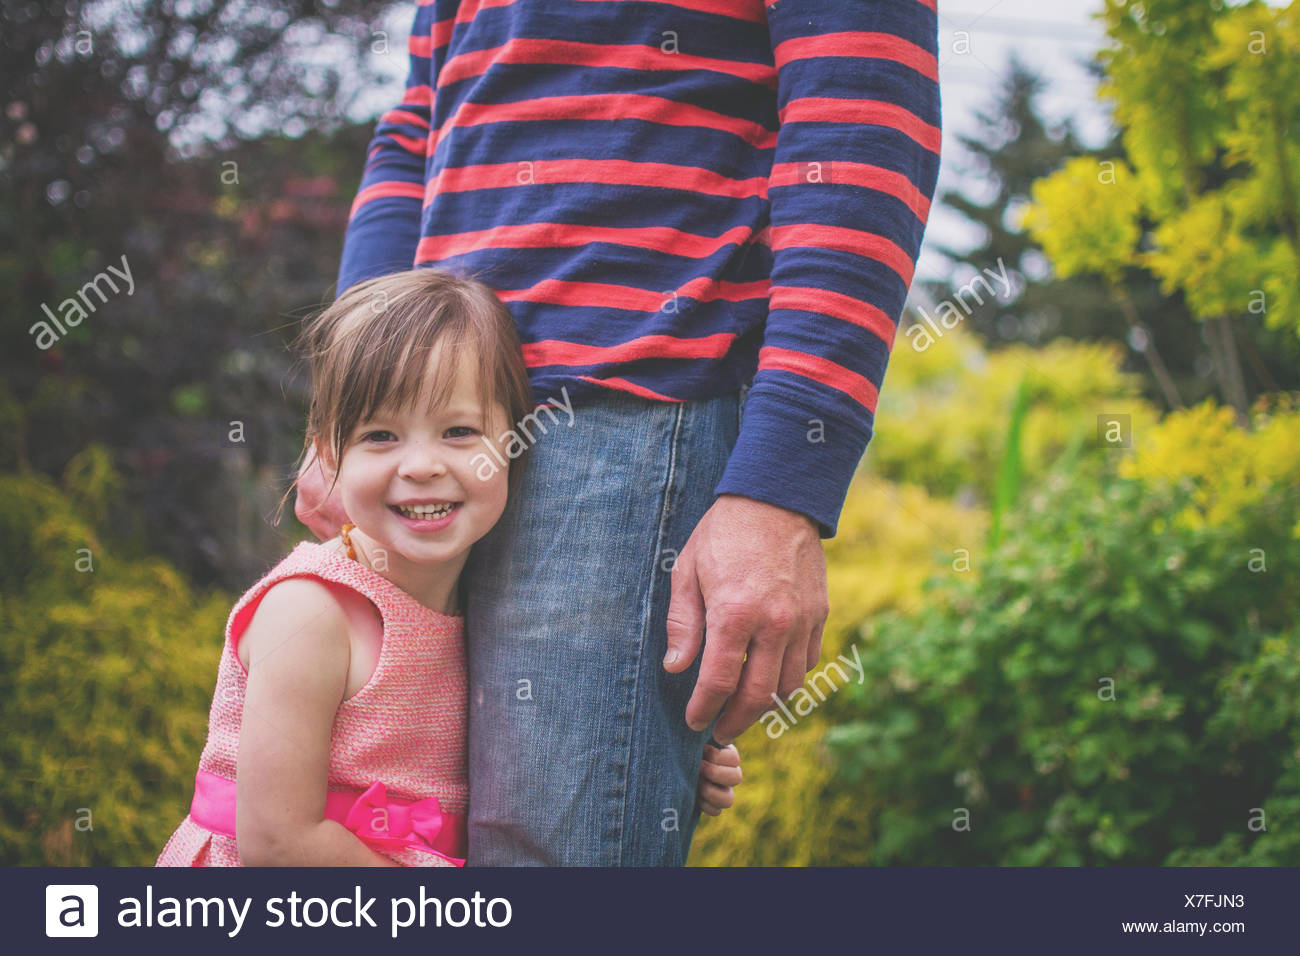 Close-up of a Smiling girl hugging father's leg Photo Stock